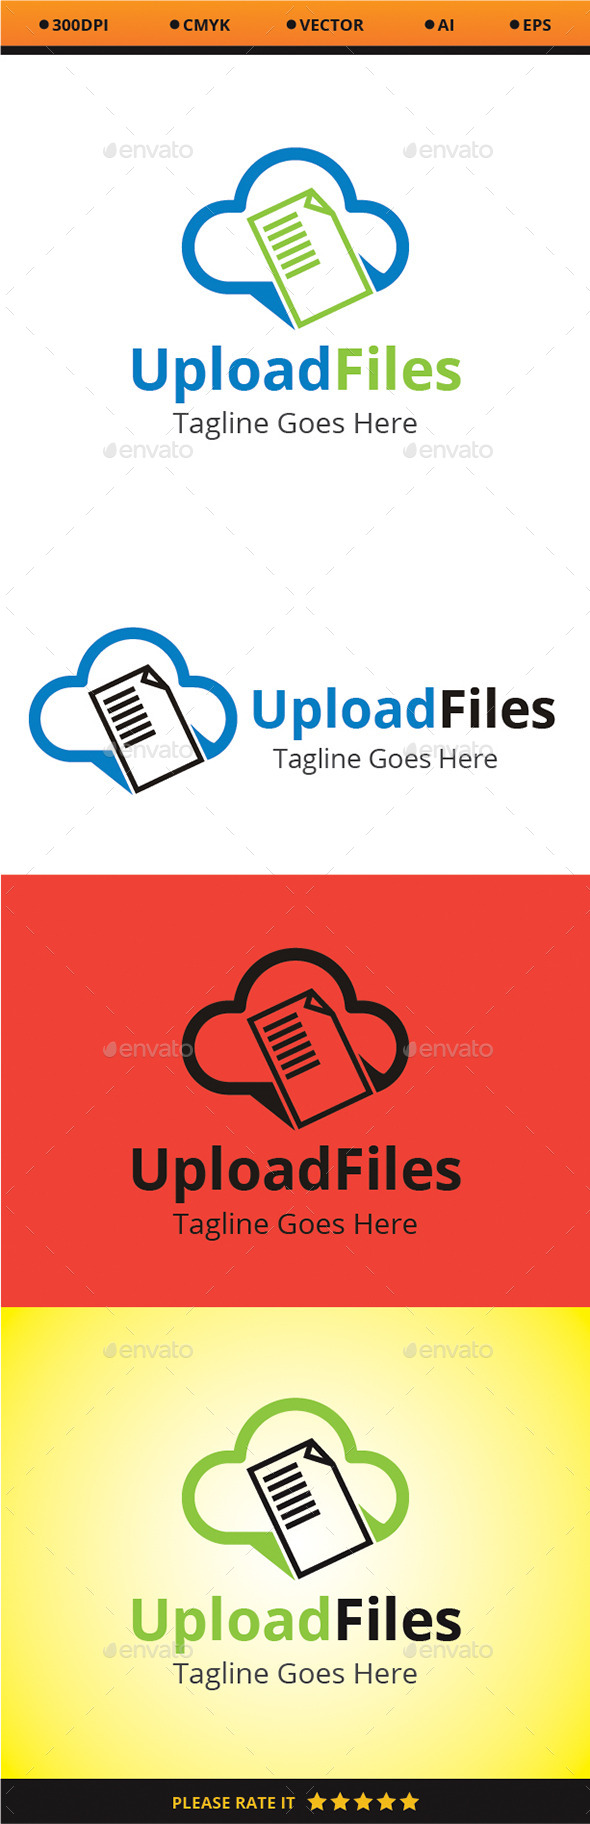 Upload Files - Logo Templates